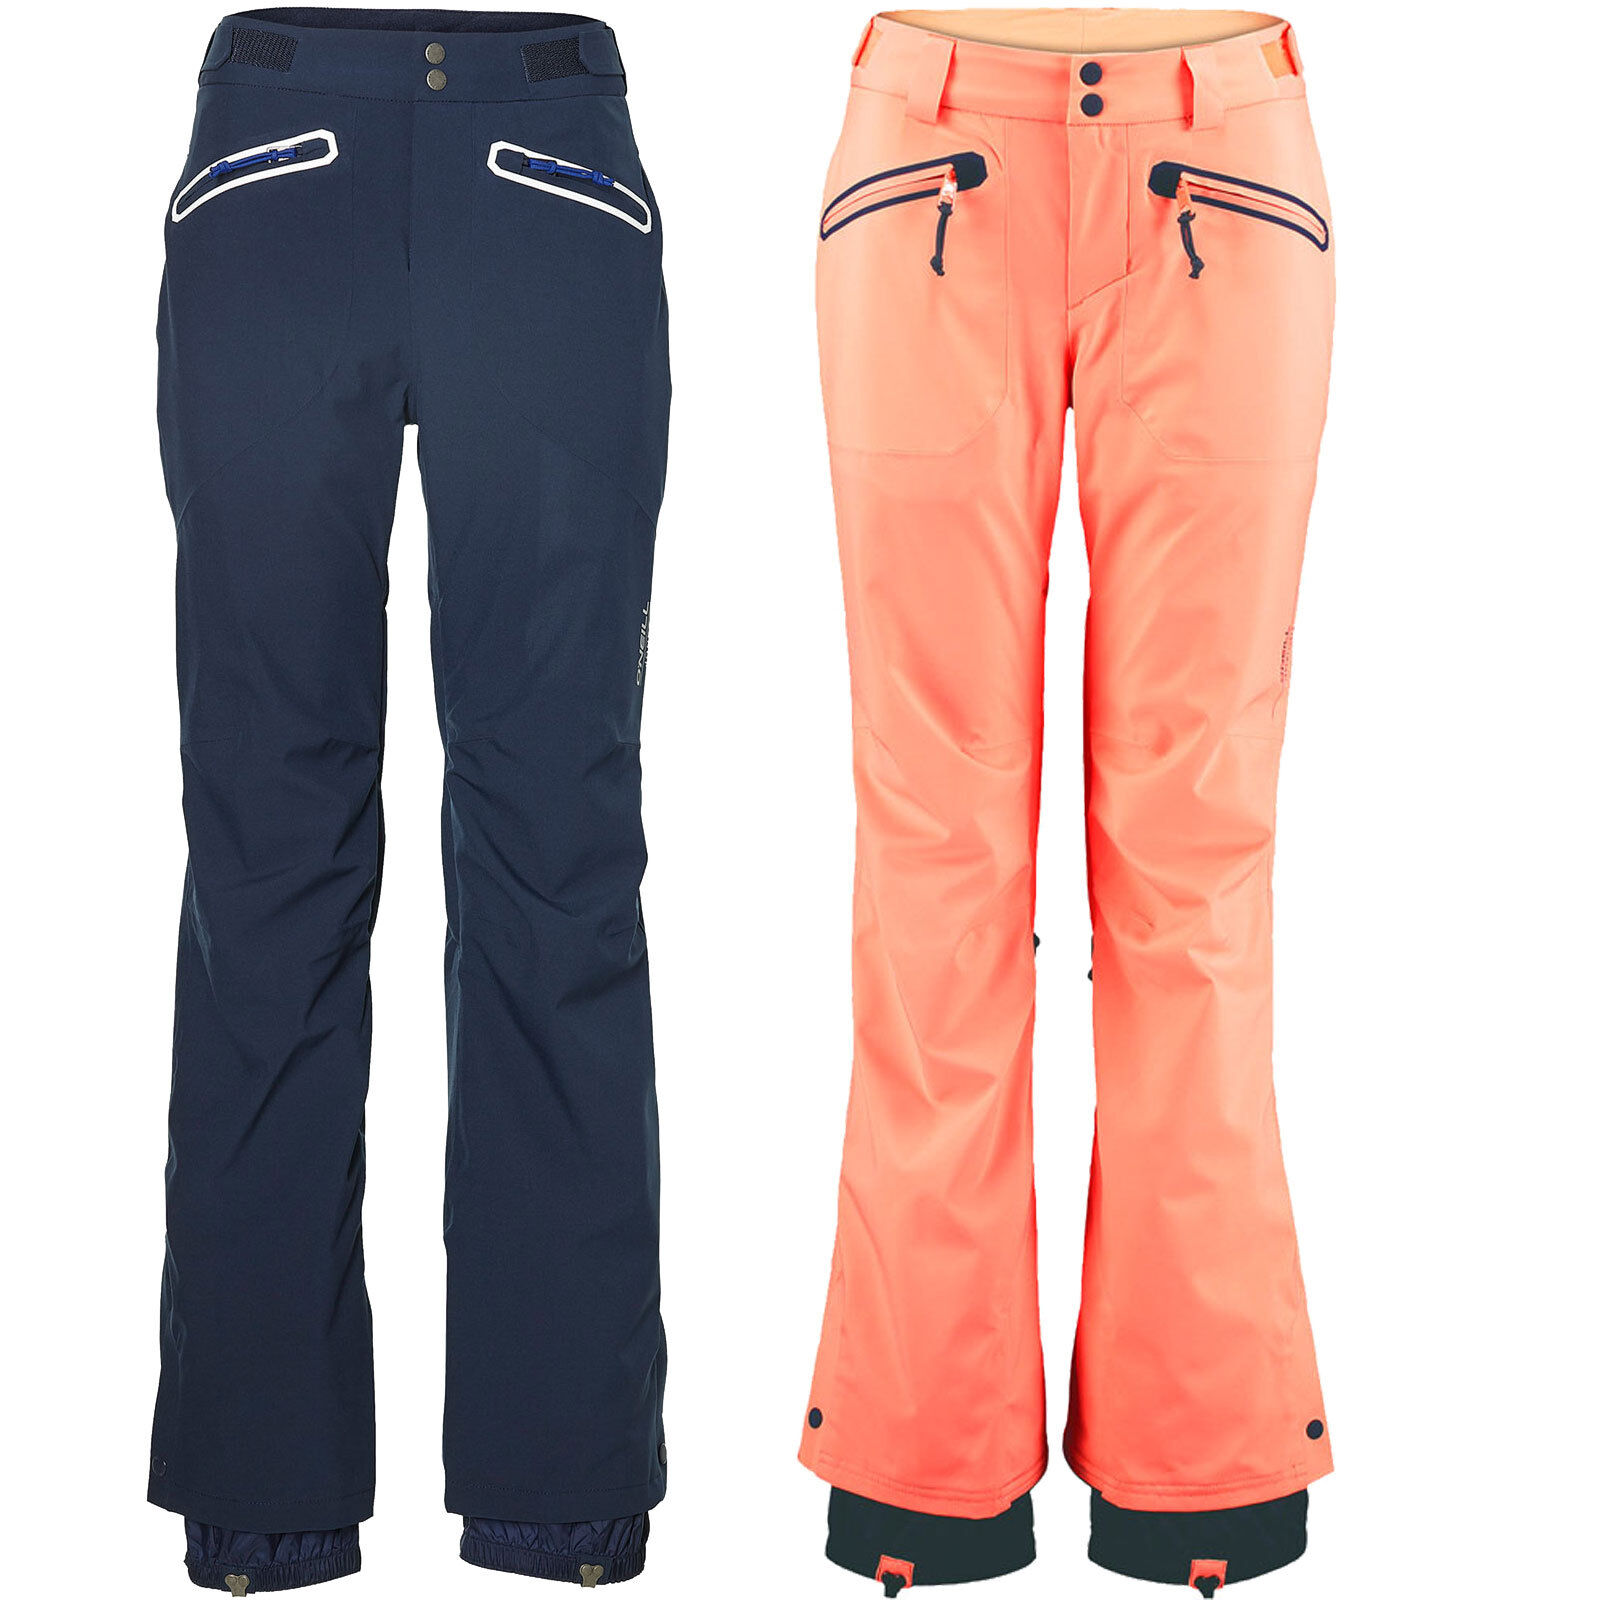 Oneill o'Neill Jeremy Jones Sync Pant Ladies Ski Snowboard Winter Trousers